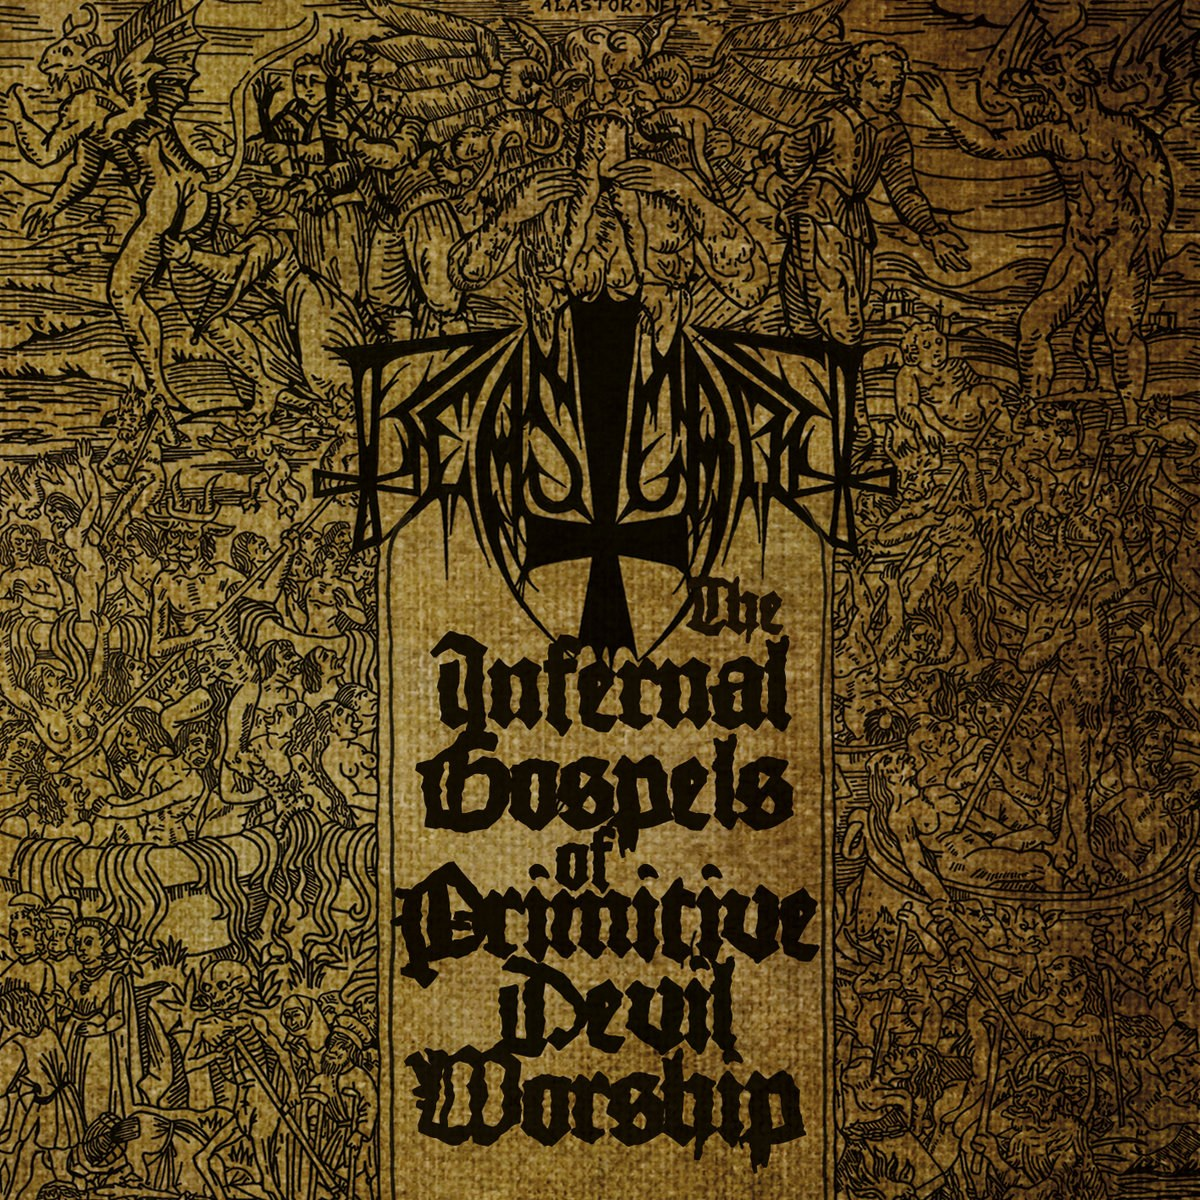 Review for Beastcraft - The Infernal Gospels of Primitive Devil Worship